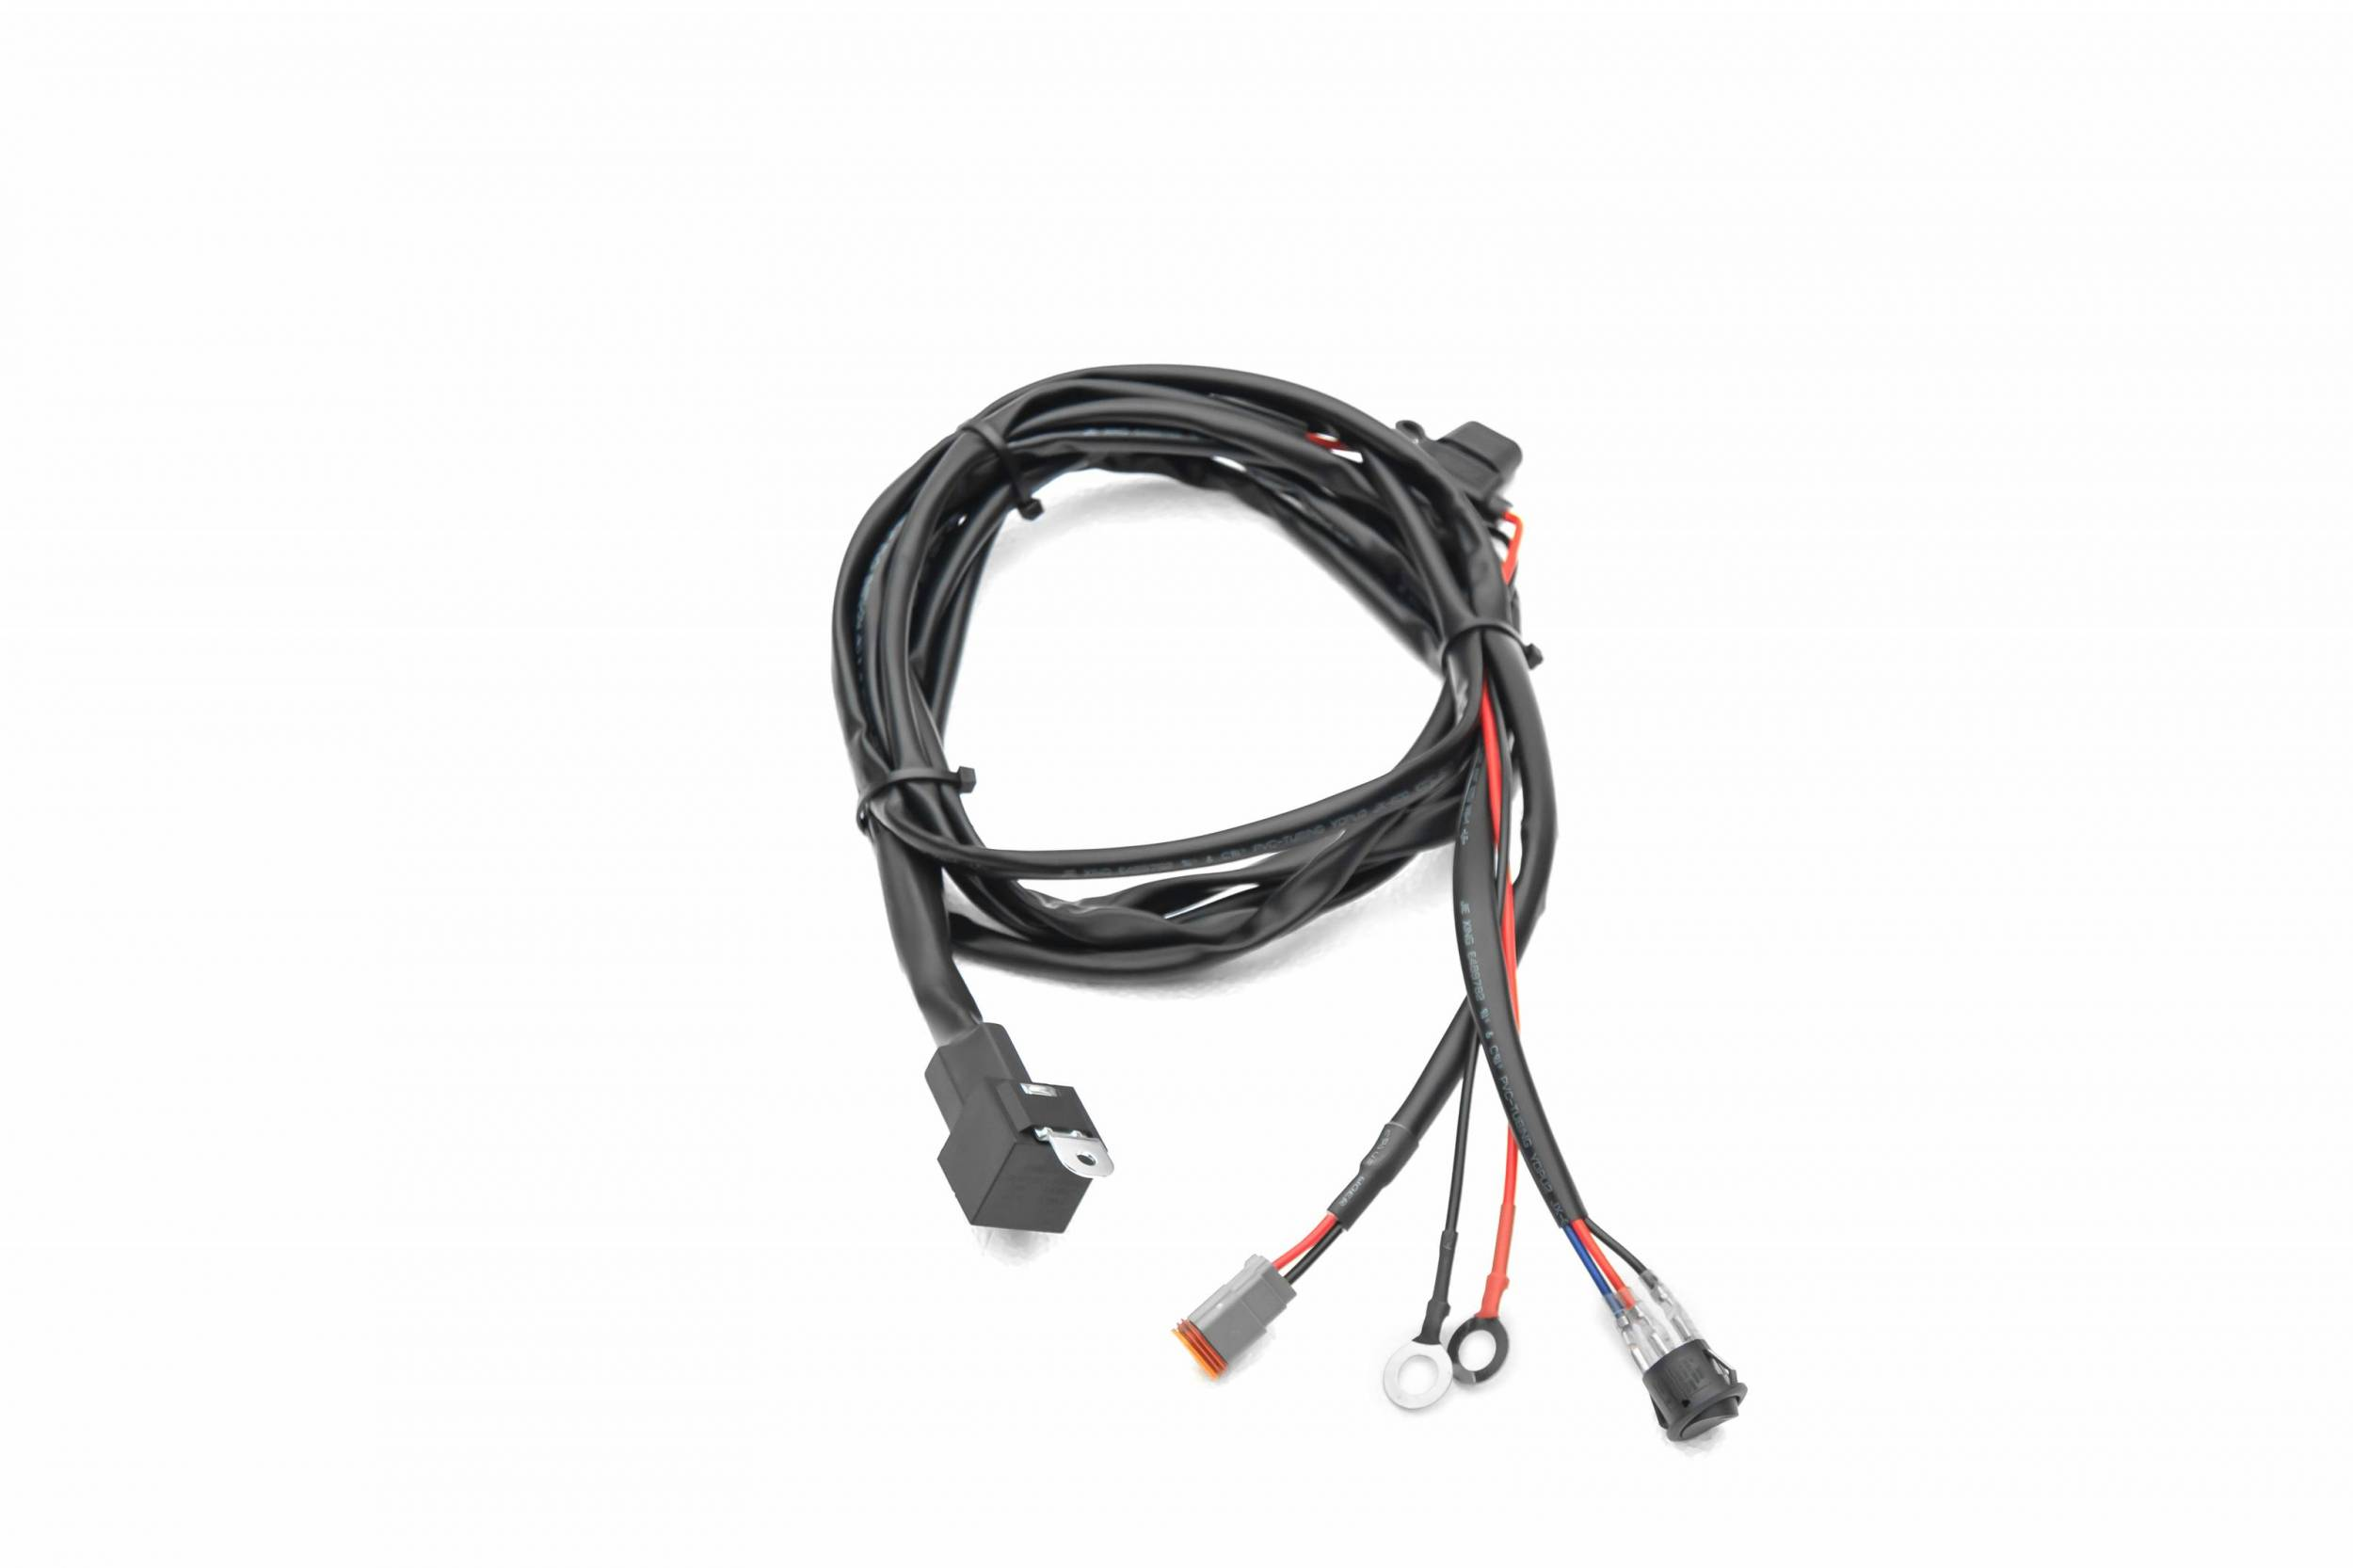 ZROADZ OFF ROAD PRODUCTS Z390020S-A Universal 9 FT DT Series Wiring Harness to connect 1  LED Light